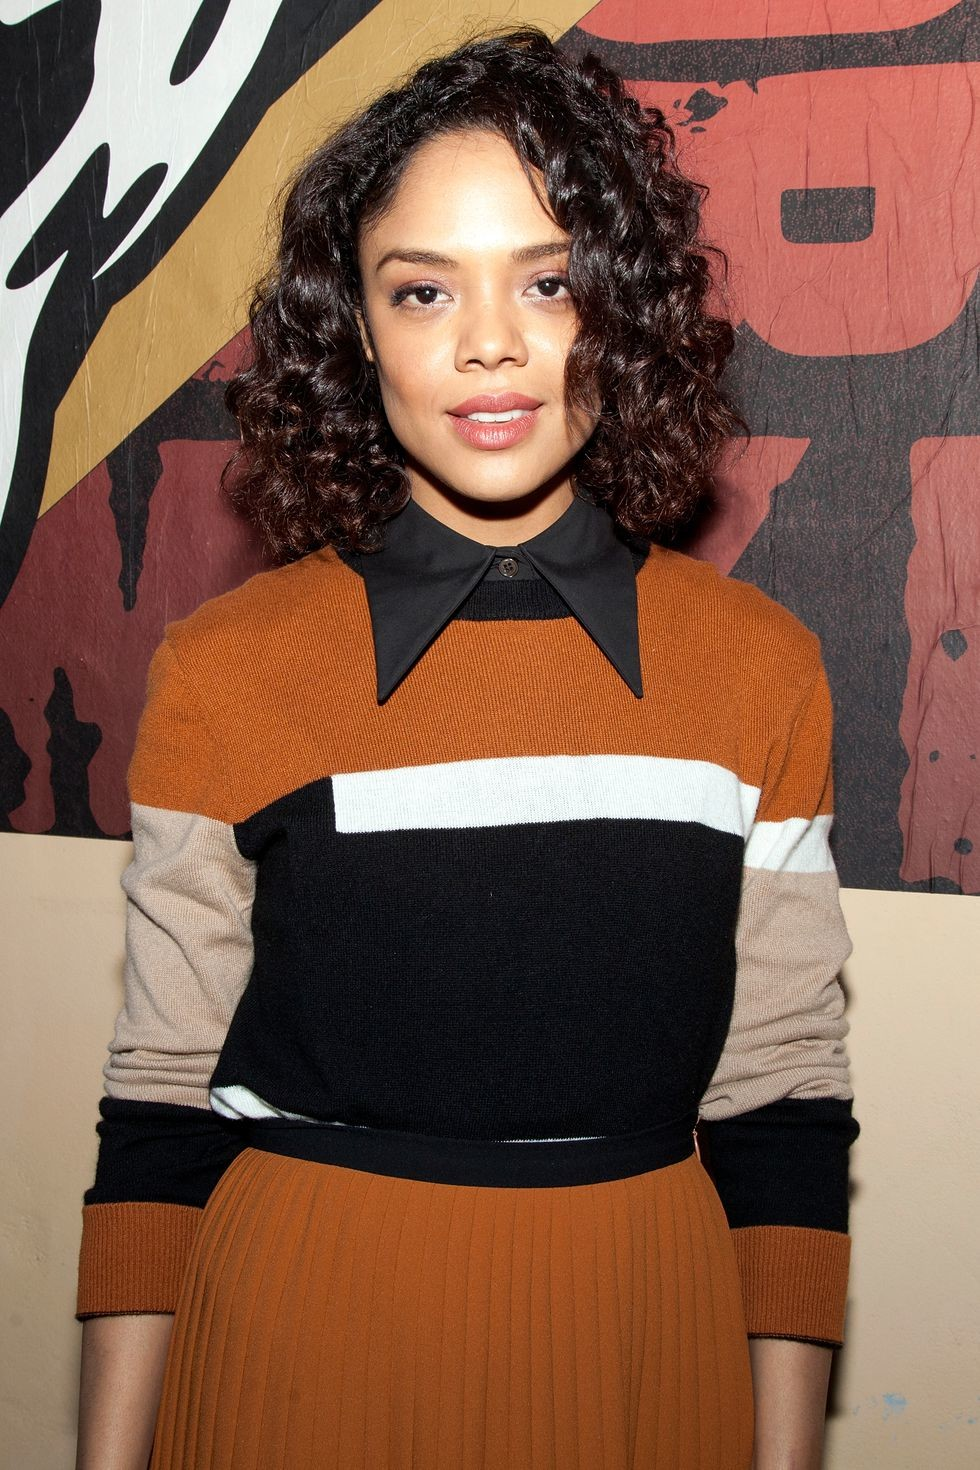 Curled-Bob Best Short Hairstyles for Black Women